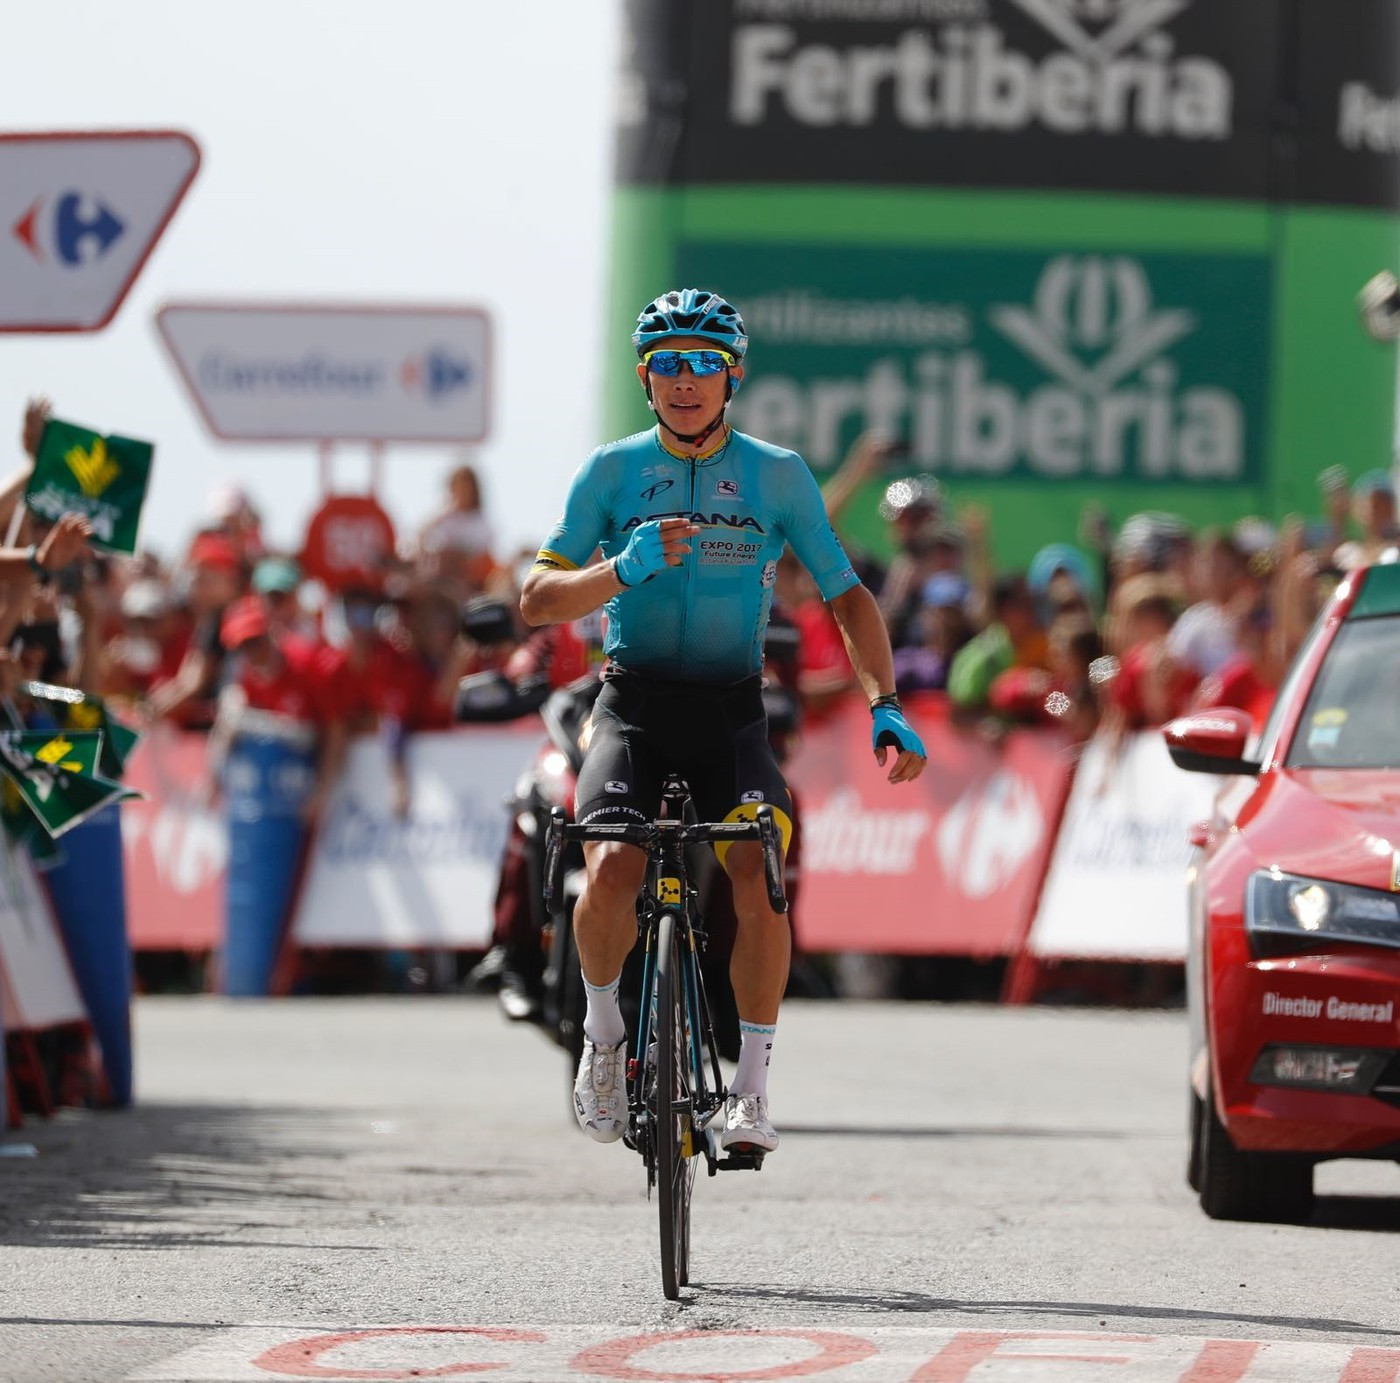 Chris Froome closes in on Vuelta victory and a rare double